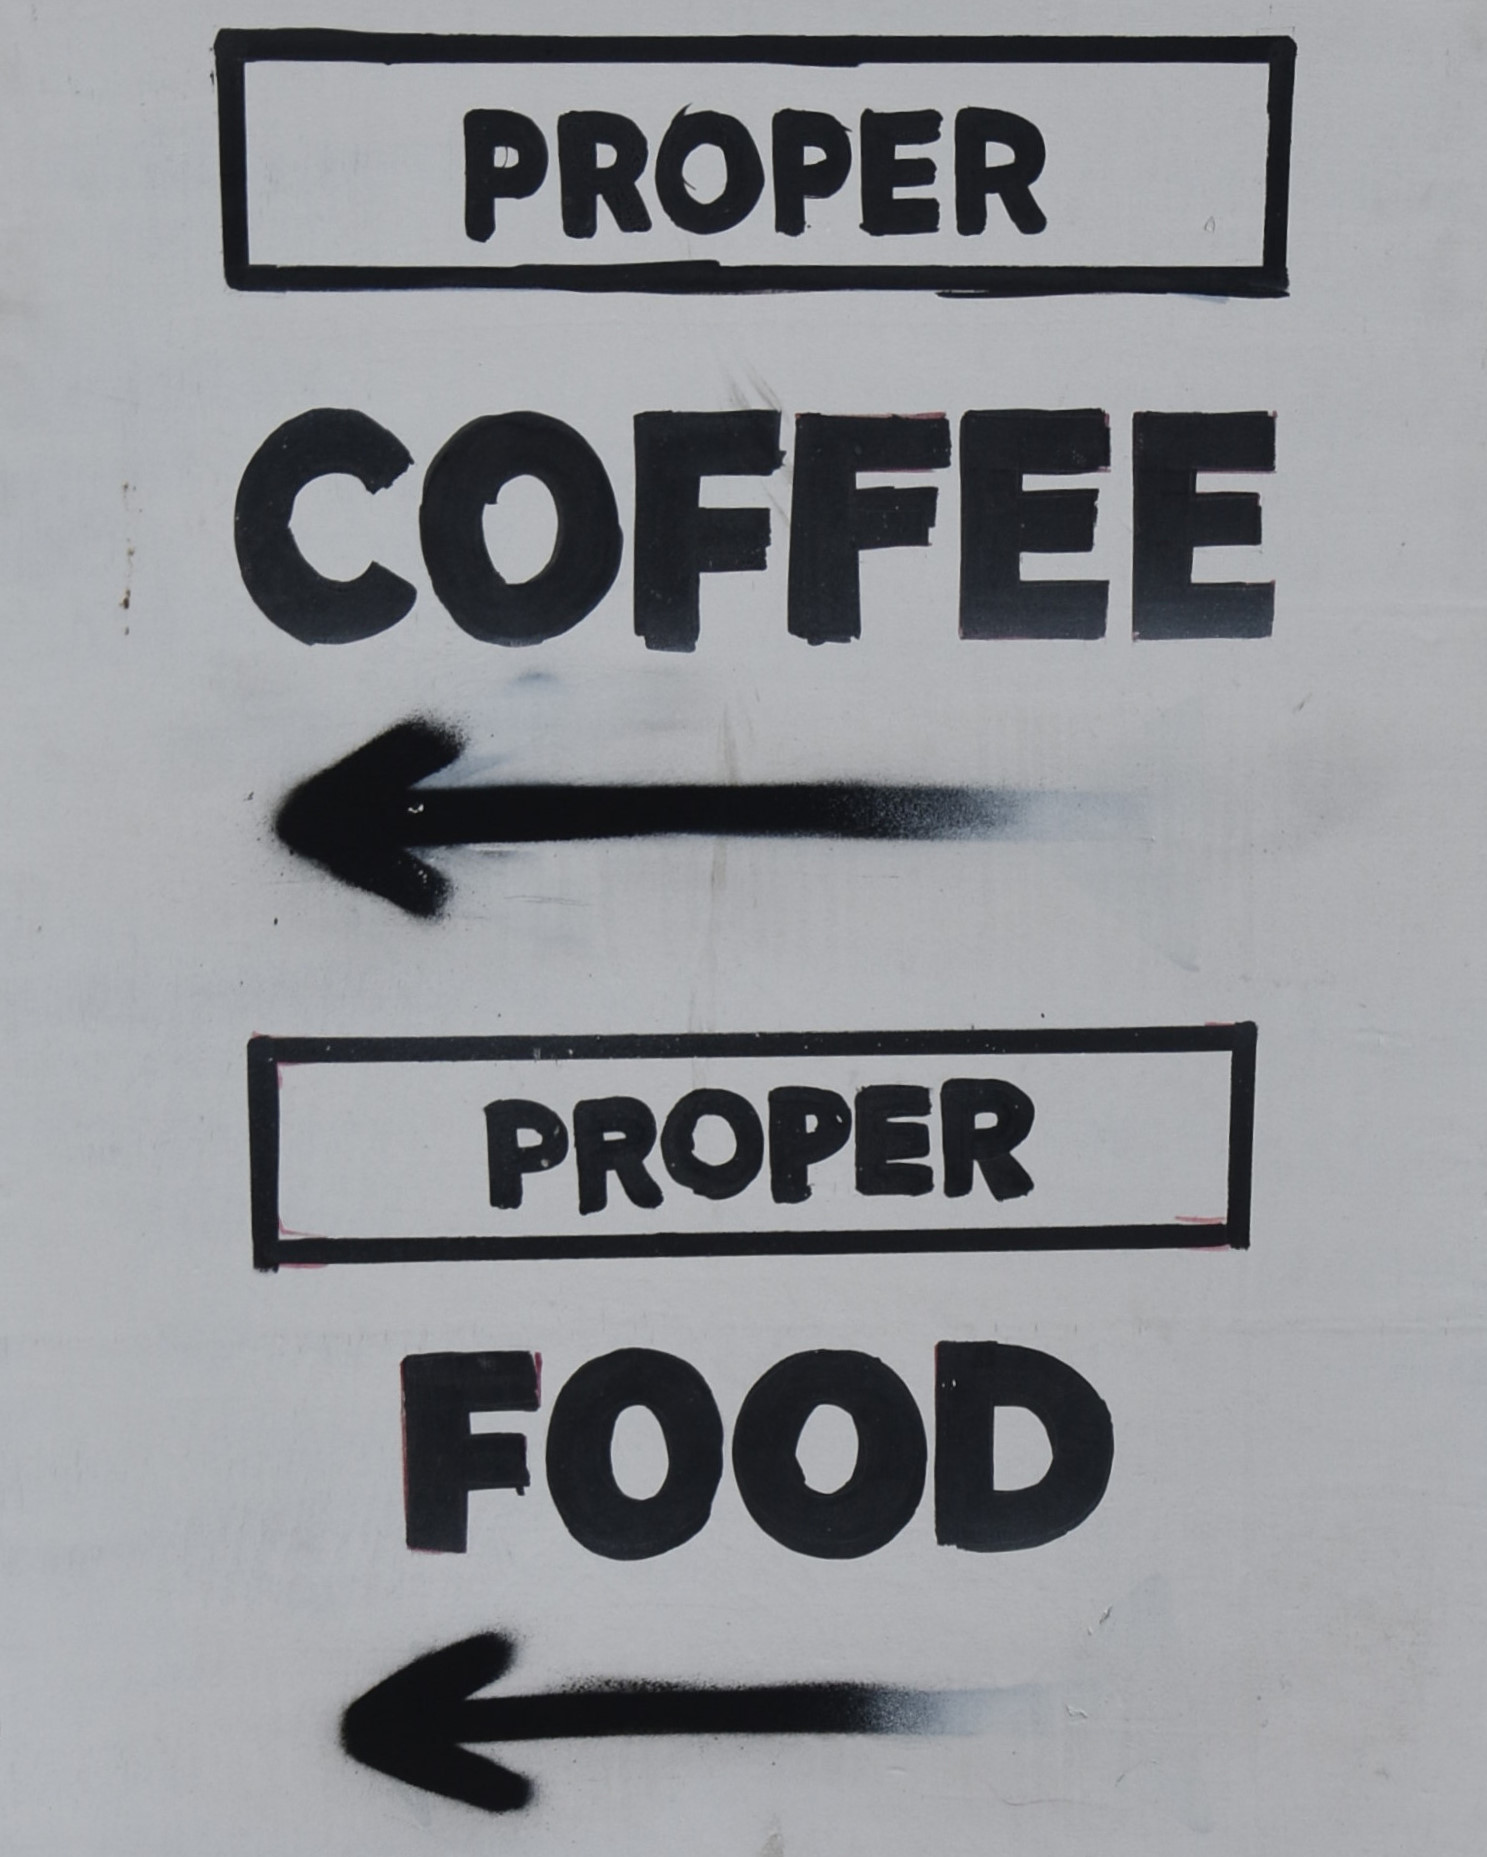 The A-board outside the Birmingham branch of Wayland's Yard promised proper coffee and proper food.